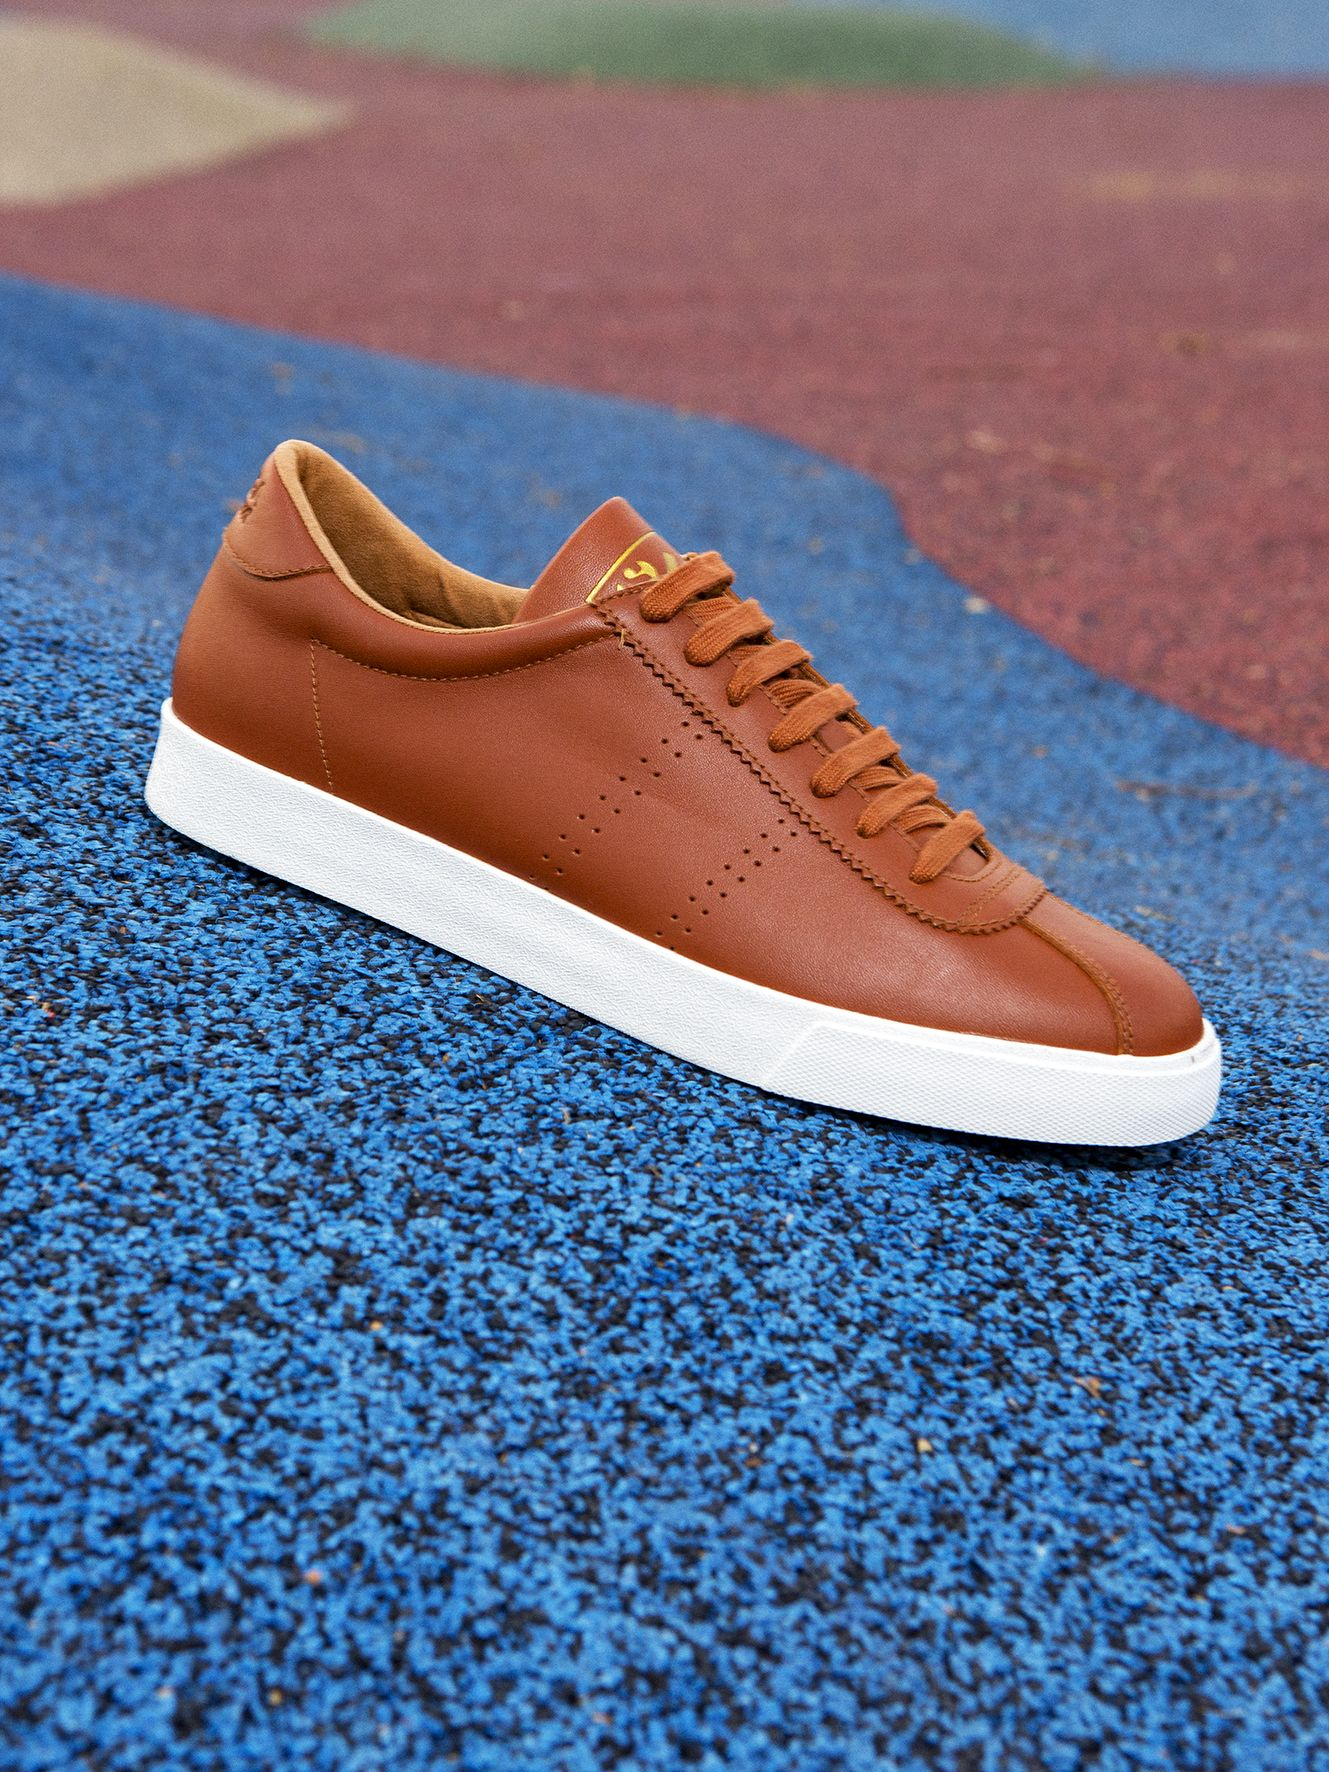 0252845a46 The latest addition to the Superga Sport family is inspired by our athletic  history, and a sporty tennis aesthetic. This time made in a soft cow  leather ...